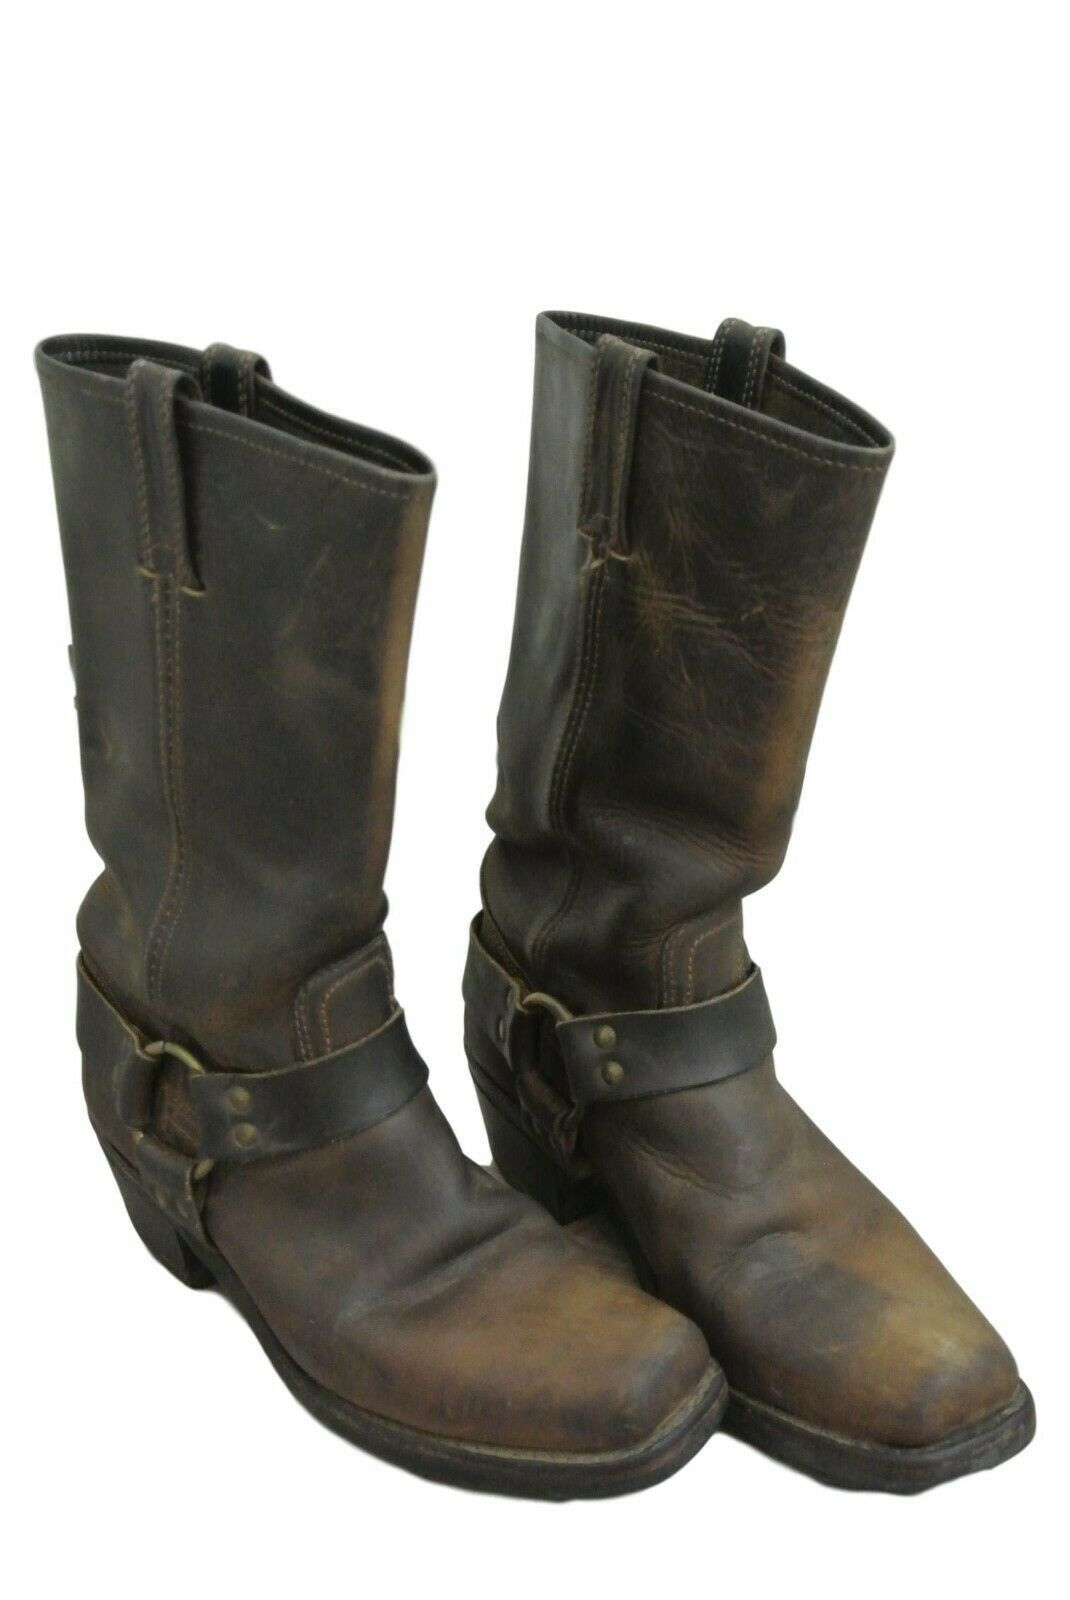 Primary image for FRYE USA $388 ICONIC Harness Boots 77300 Distressed Brown Women's 8